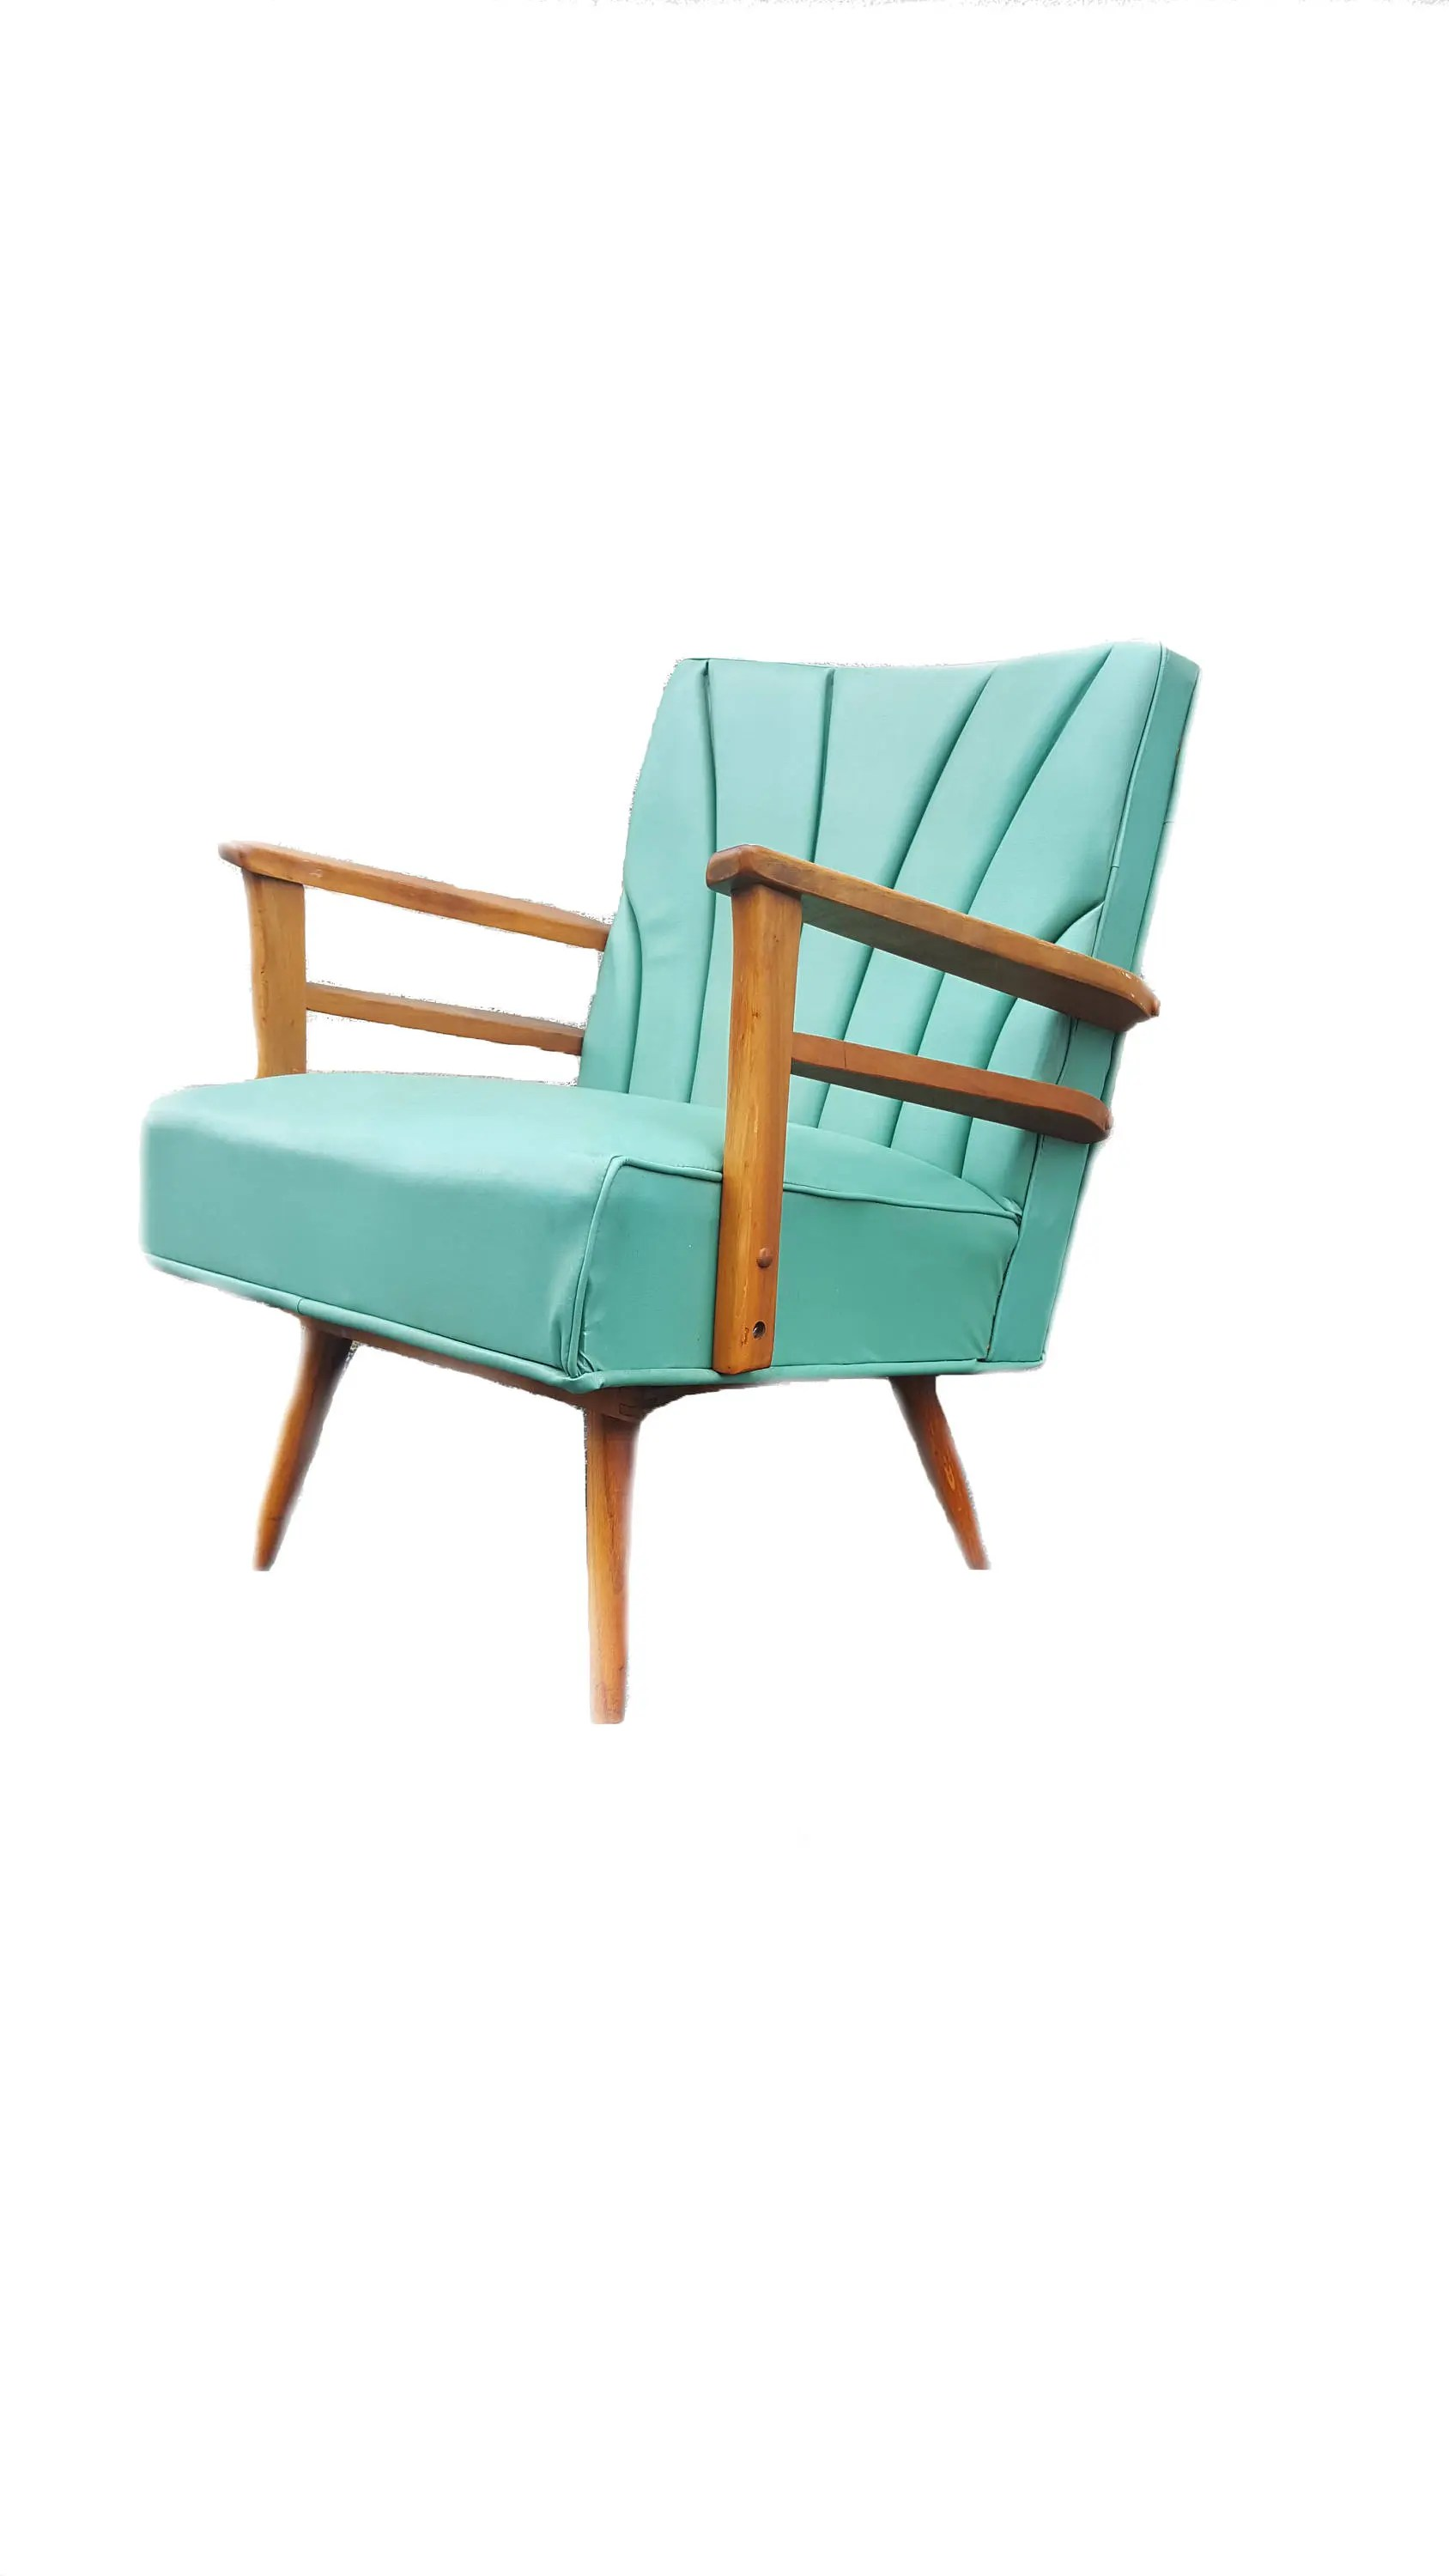 Teal Rocking Chair Mid Century Rocking Chair Vintage Teal Rocker